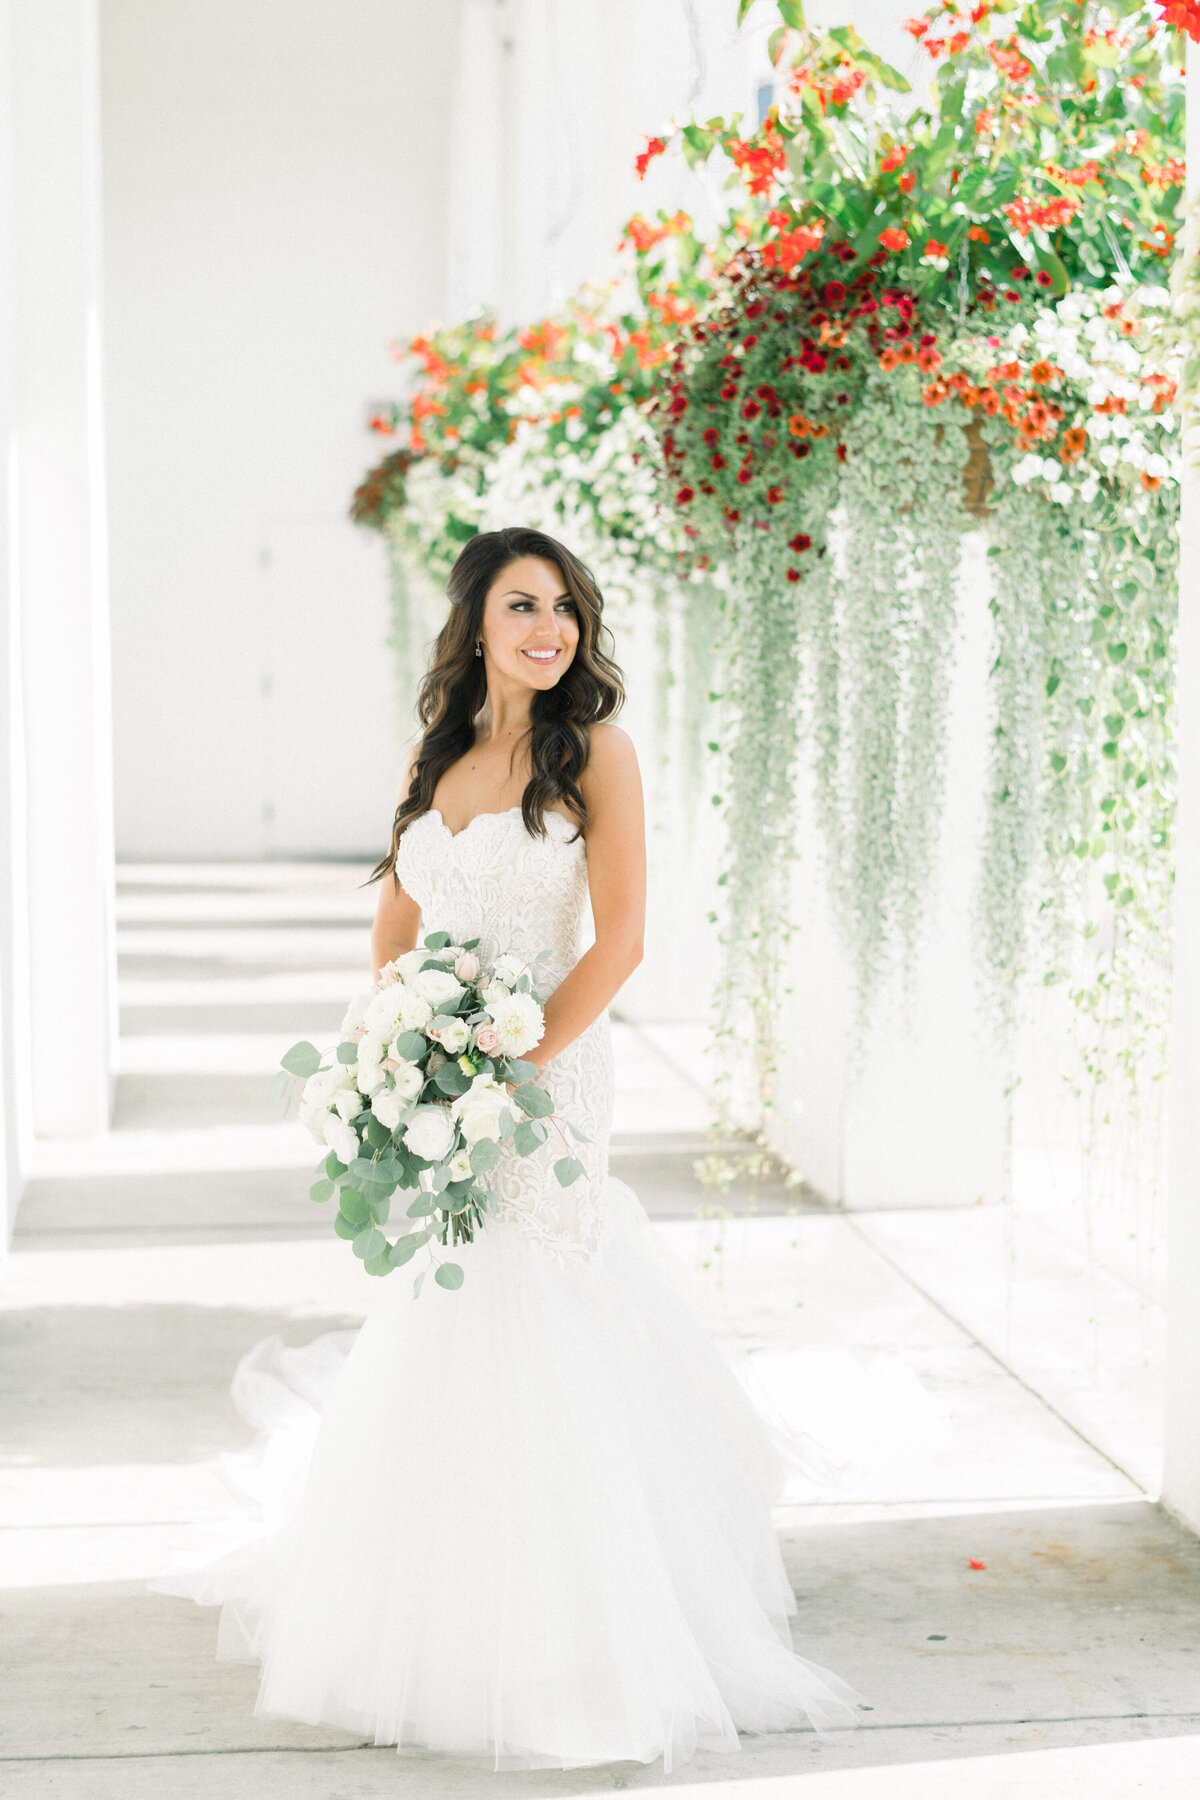 Trish Allison Photography, Minneapolis wedding photographer, MN wedding photographer, luxury wedding photographer, film wedding photographer MN, Lafayette Club Wedding Photos, lake minnetonka photographer